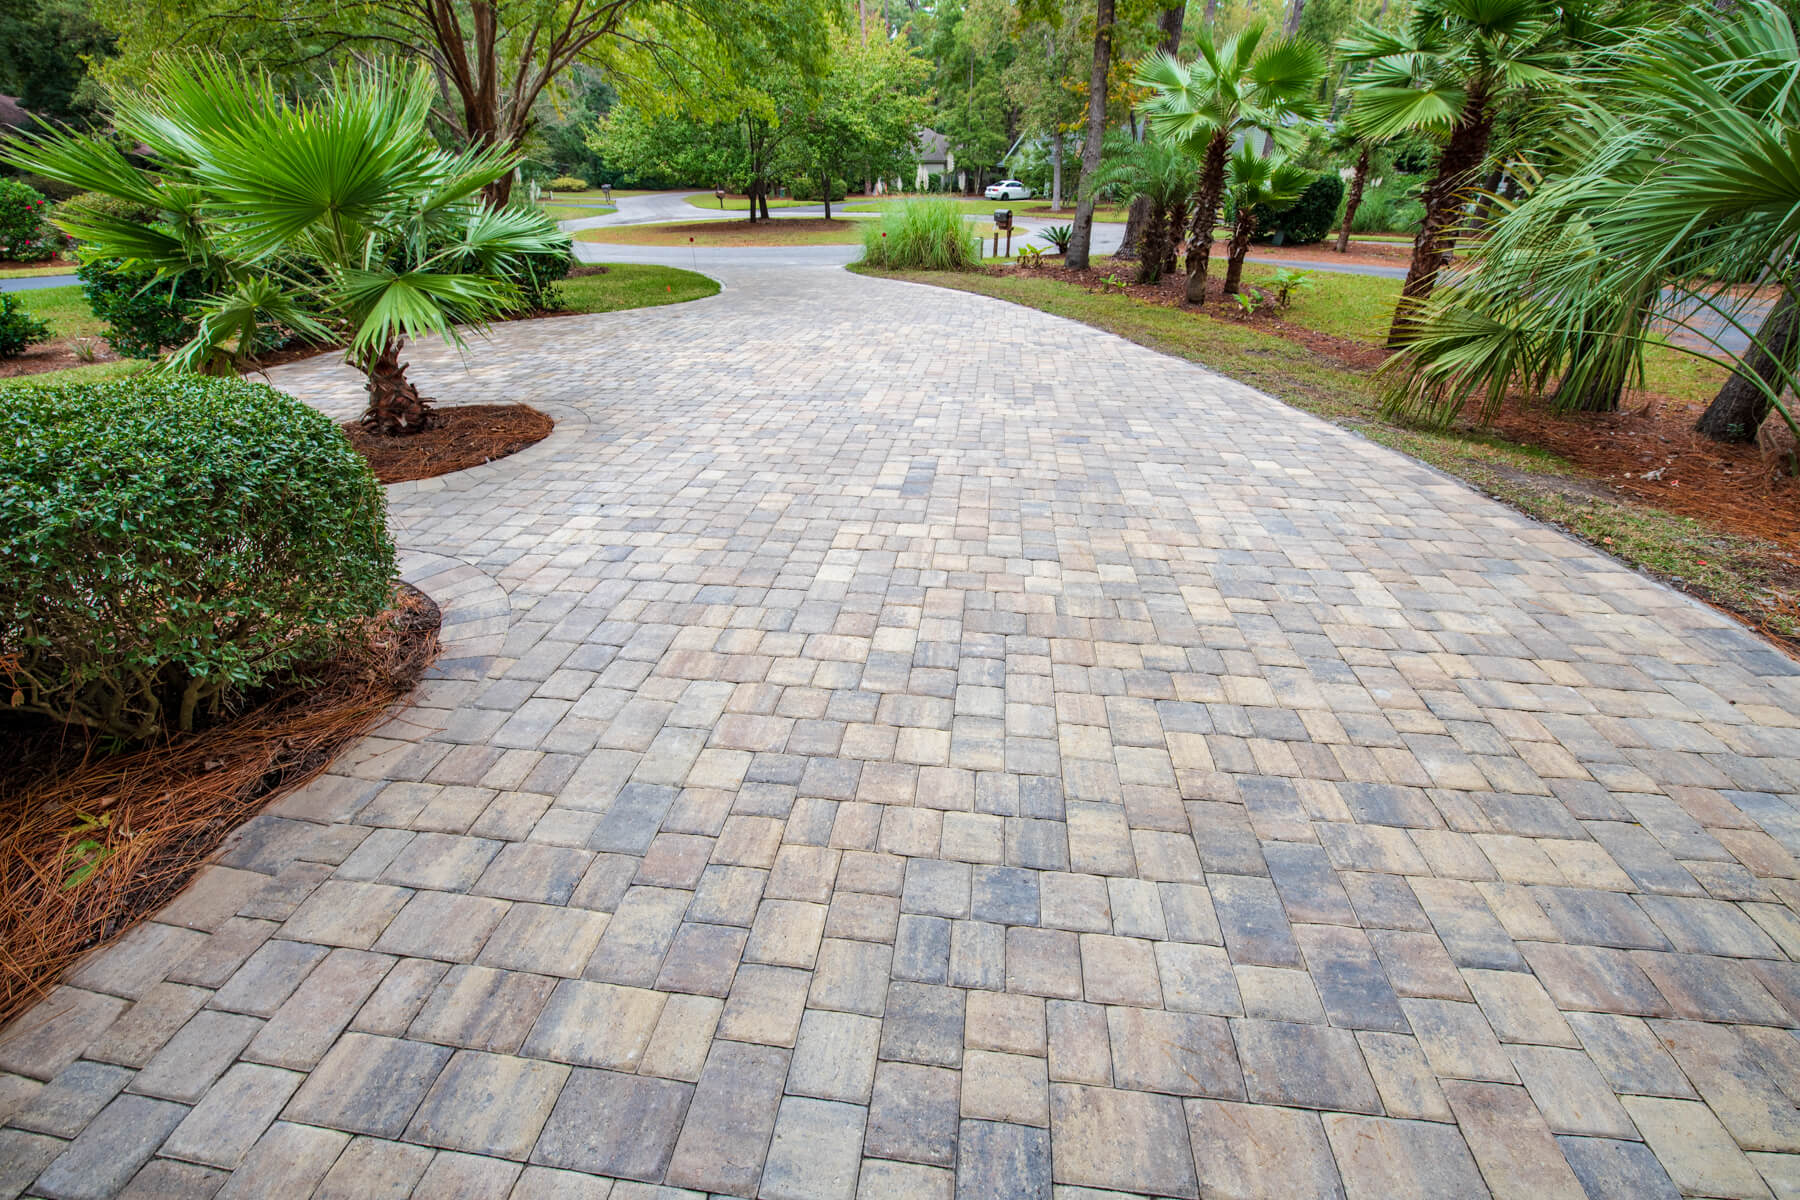 Update Your Home's Exterior - Install Concrete Brick Pavers